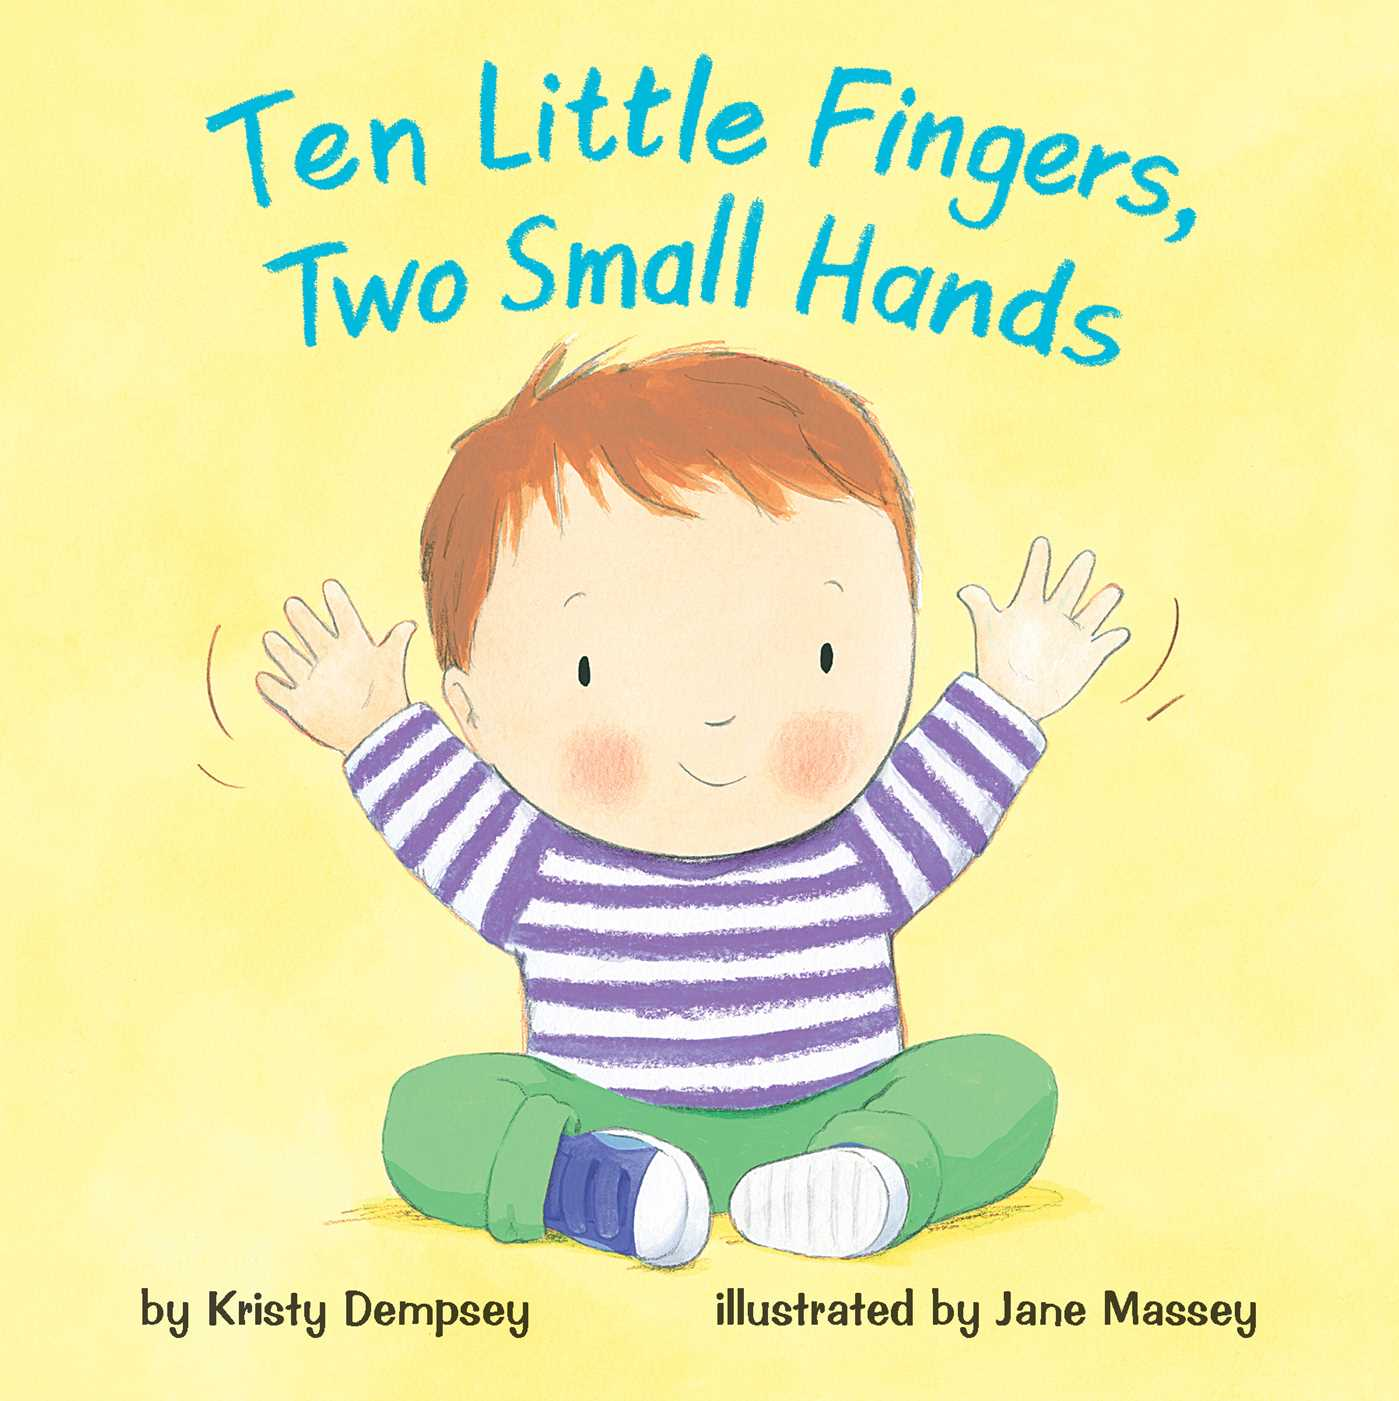 10 Little Fingers 2 Small Hands (Board Book)